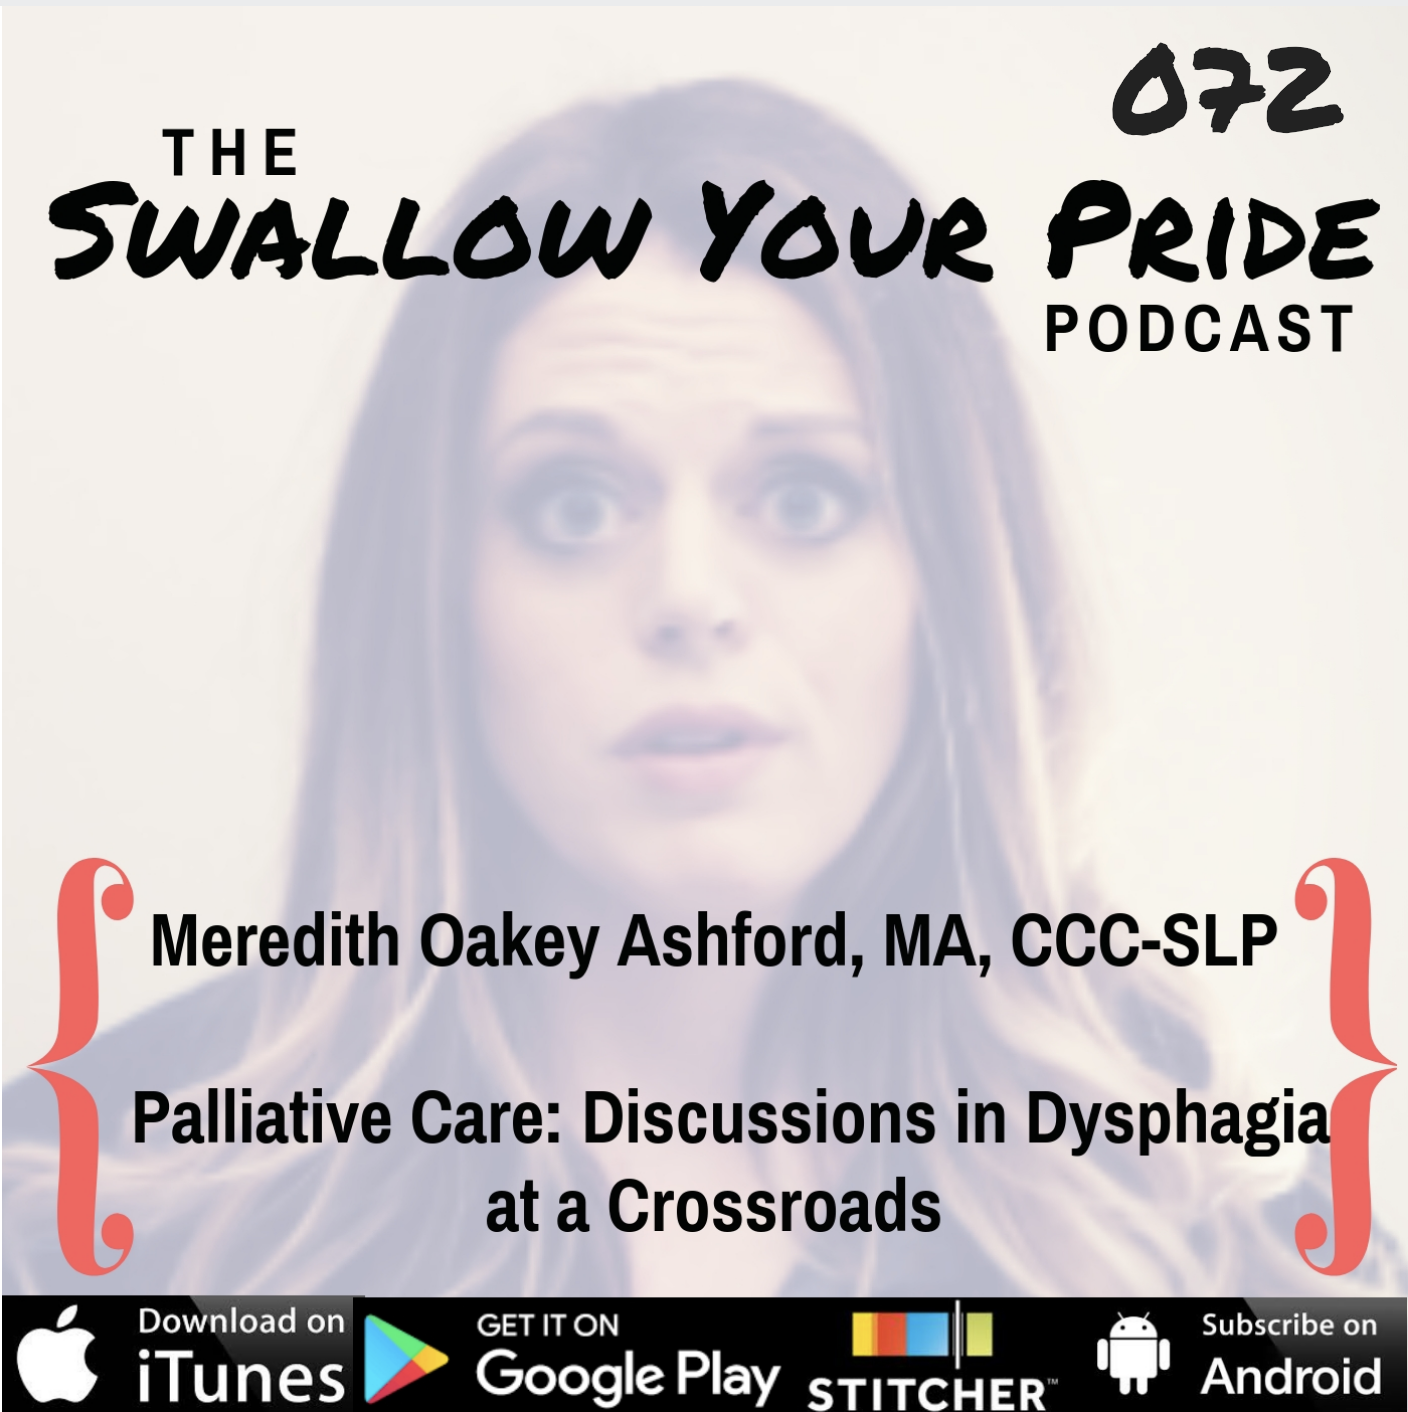 072 – Meredith Oakey Ashford, MA, CCC-SLP – Palliative Care: Discussions in Dysphagia at a Crossroads